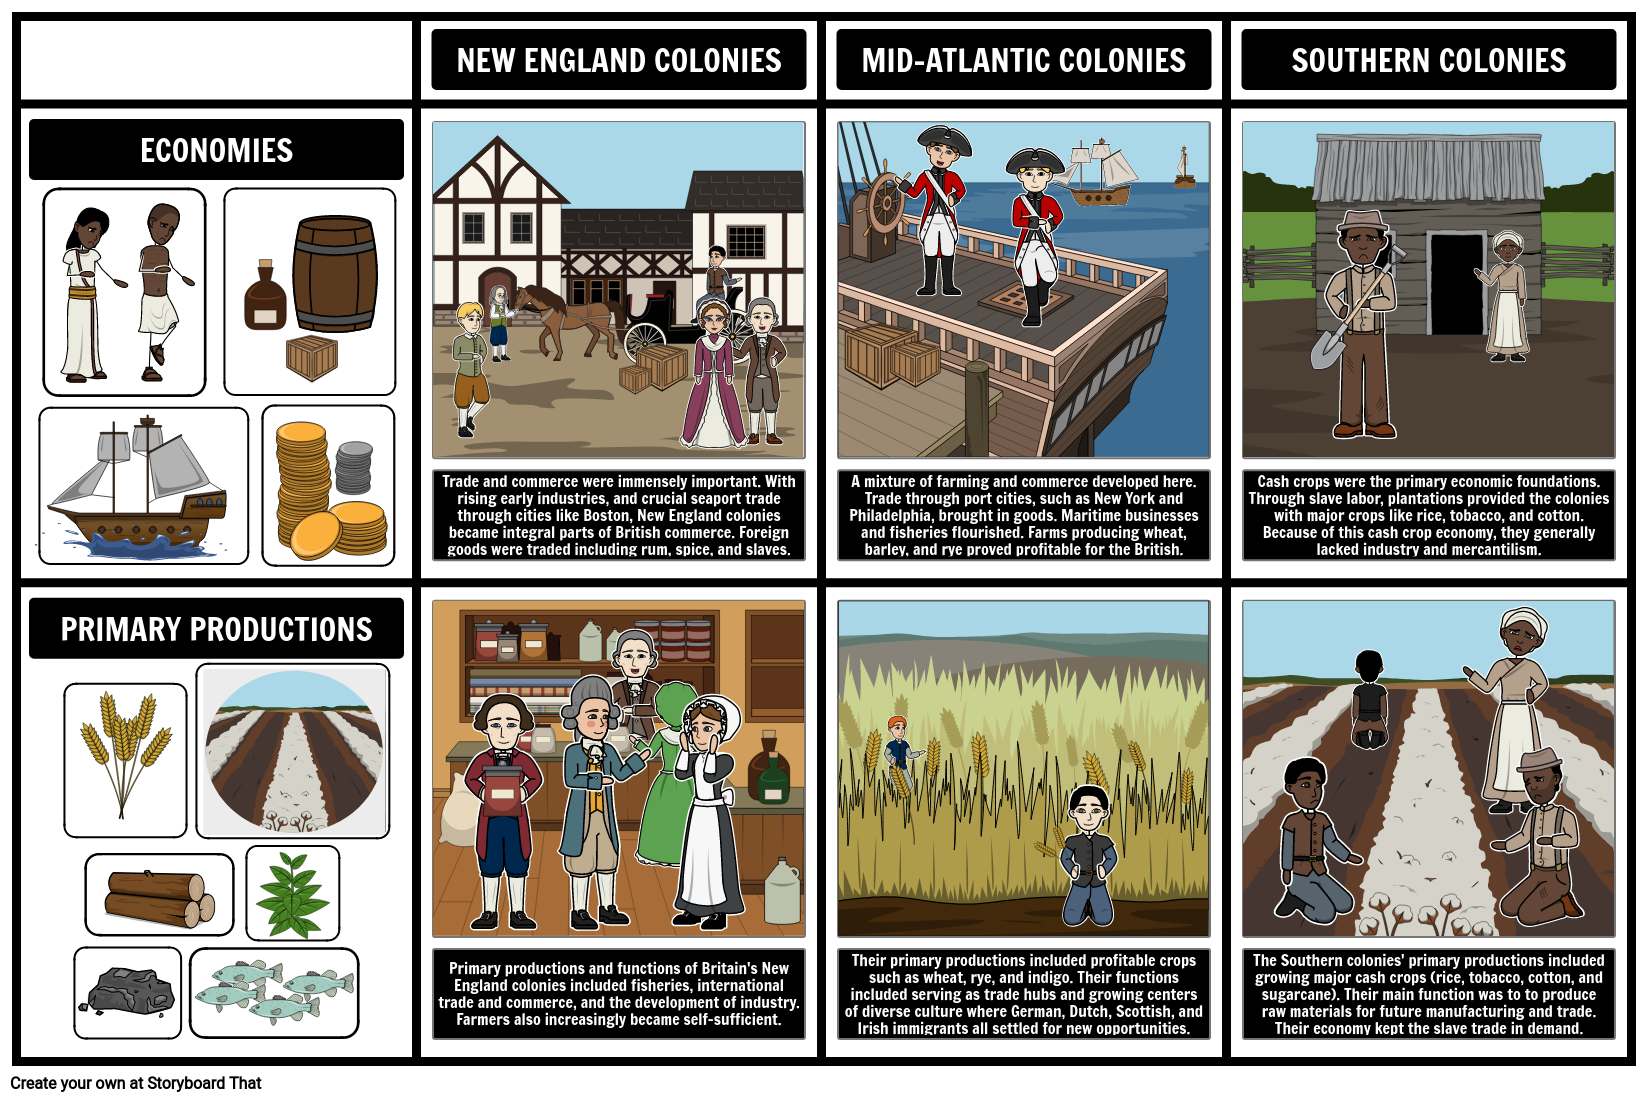 Development of the American 13 Colonies